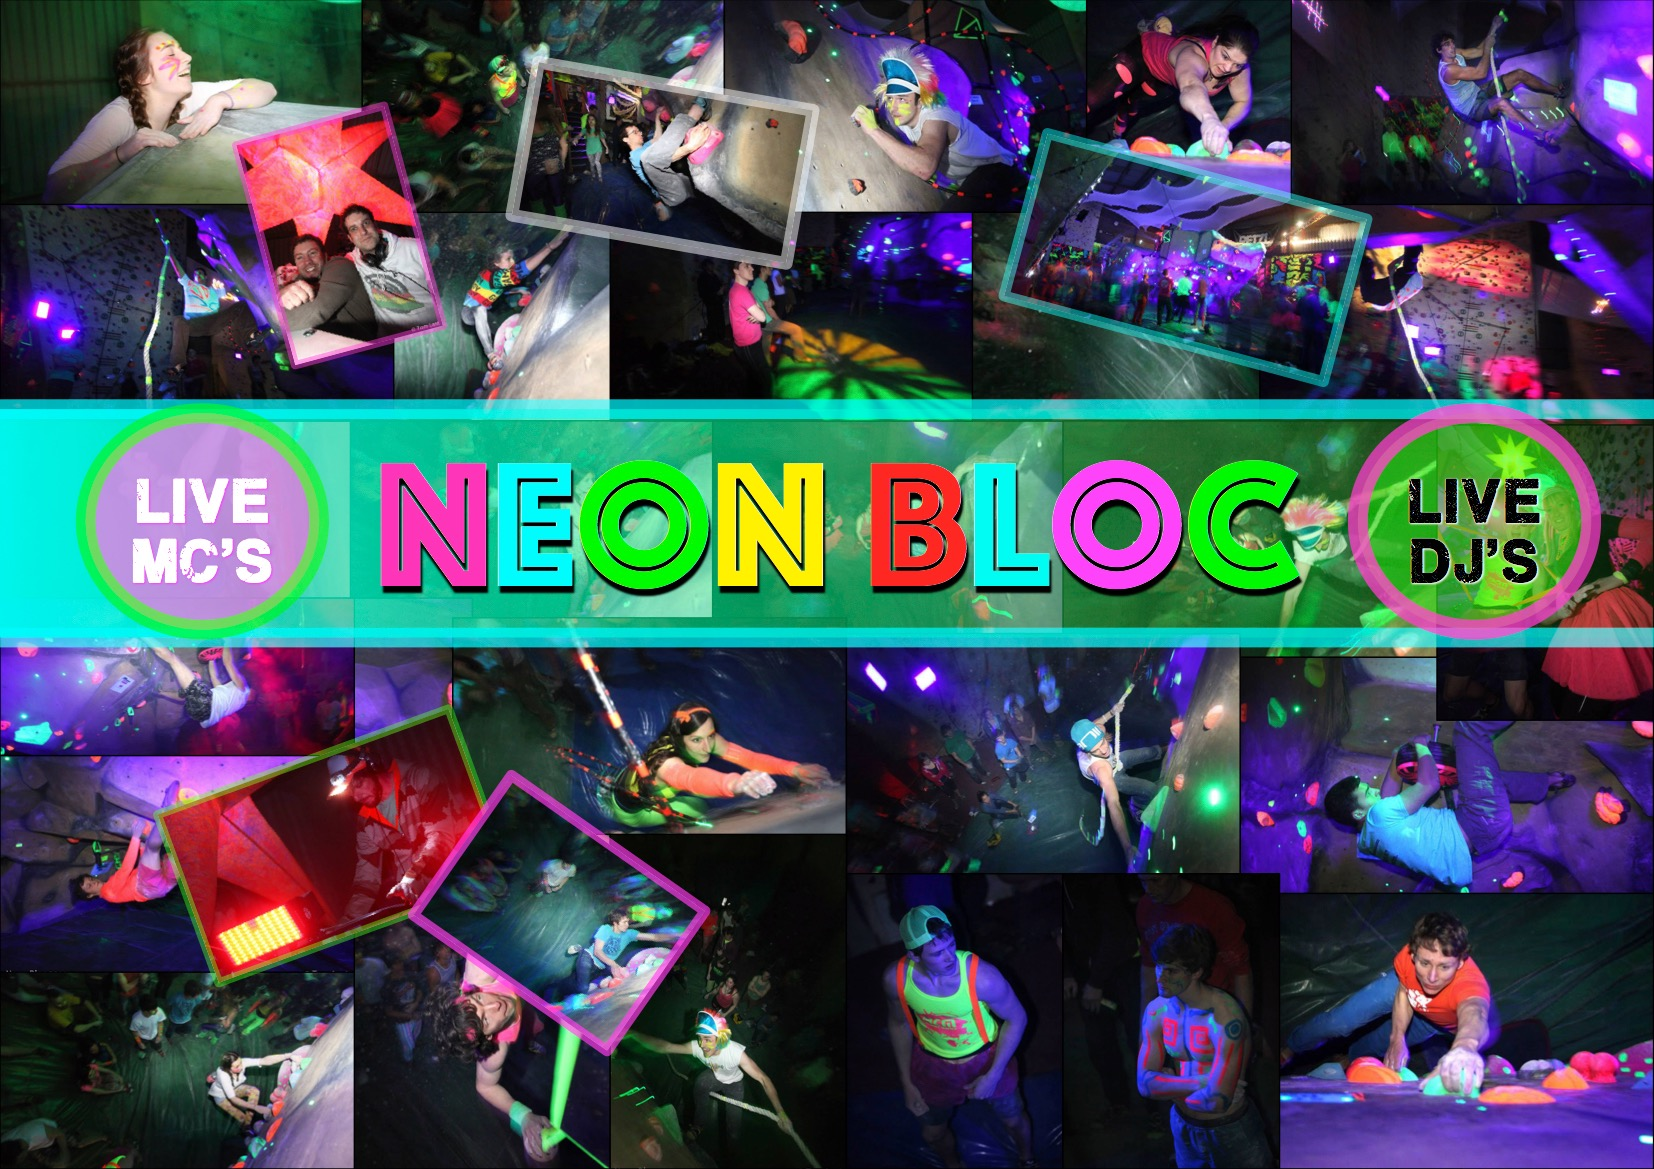 NEON BLOC - Back once again....The Barn team invite you to the uk's original UV boulder event.......Neon Bloc. Come witness a night of crazy problems, awesome light shows and live DJ's.